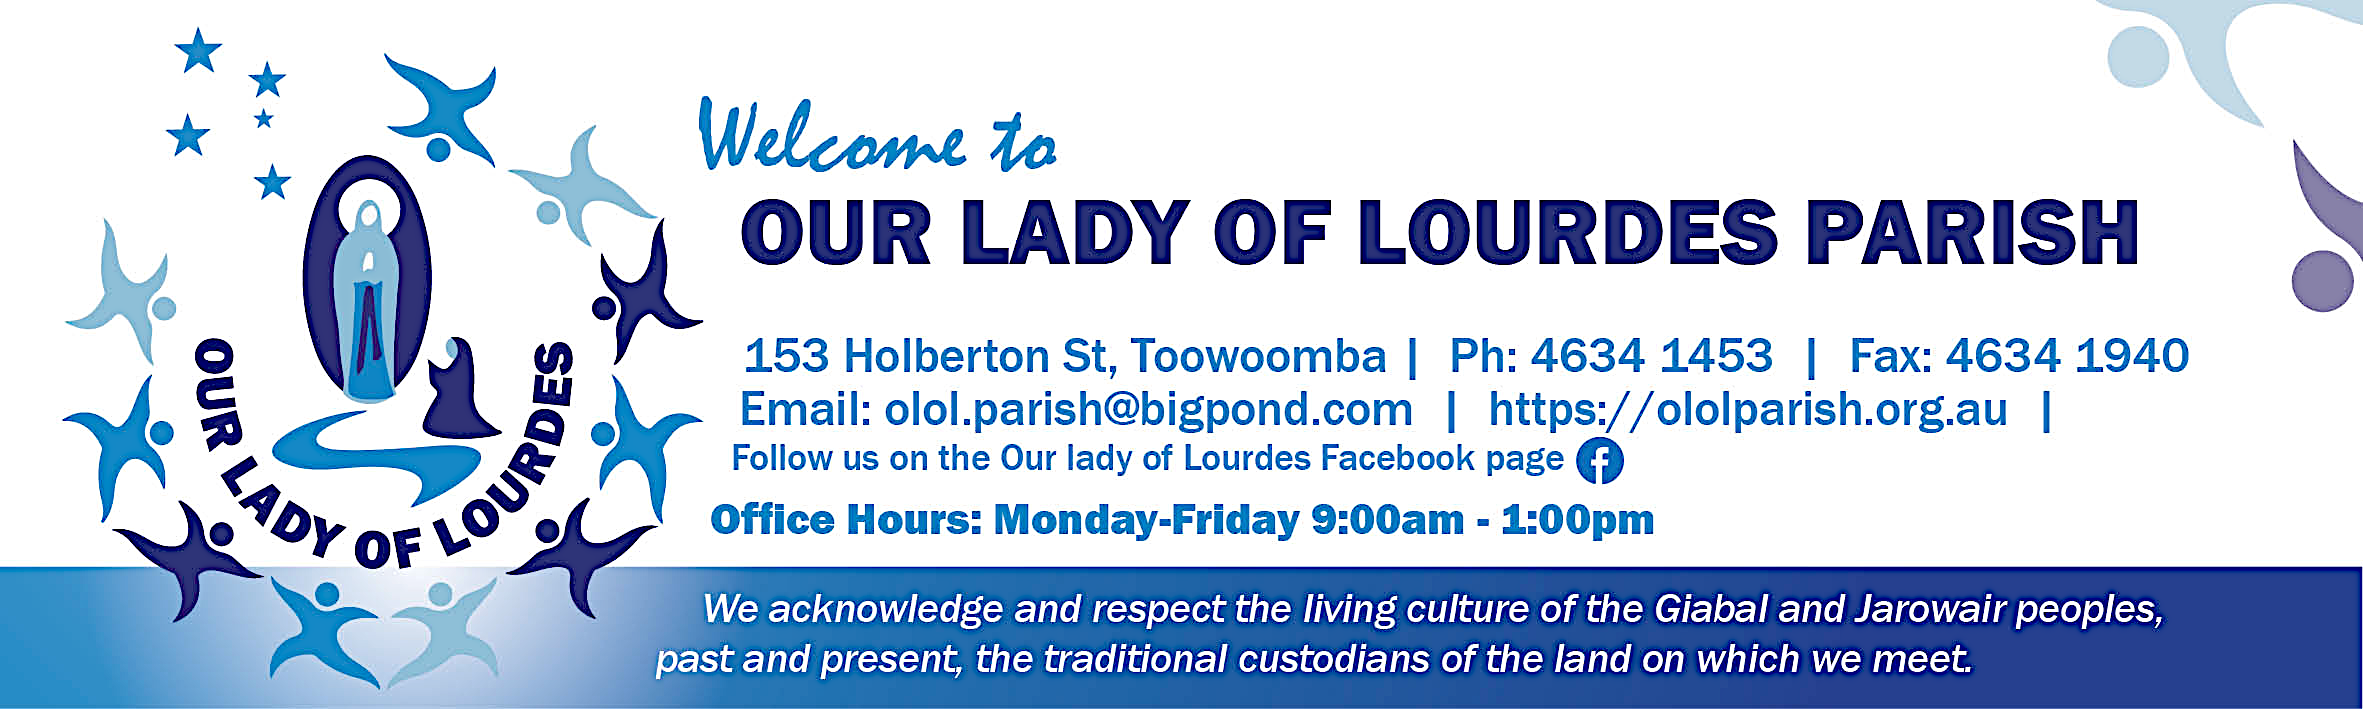 Our Lady of Lourdes Banner